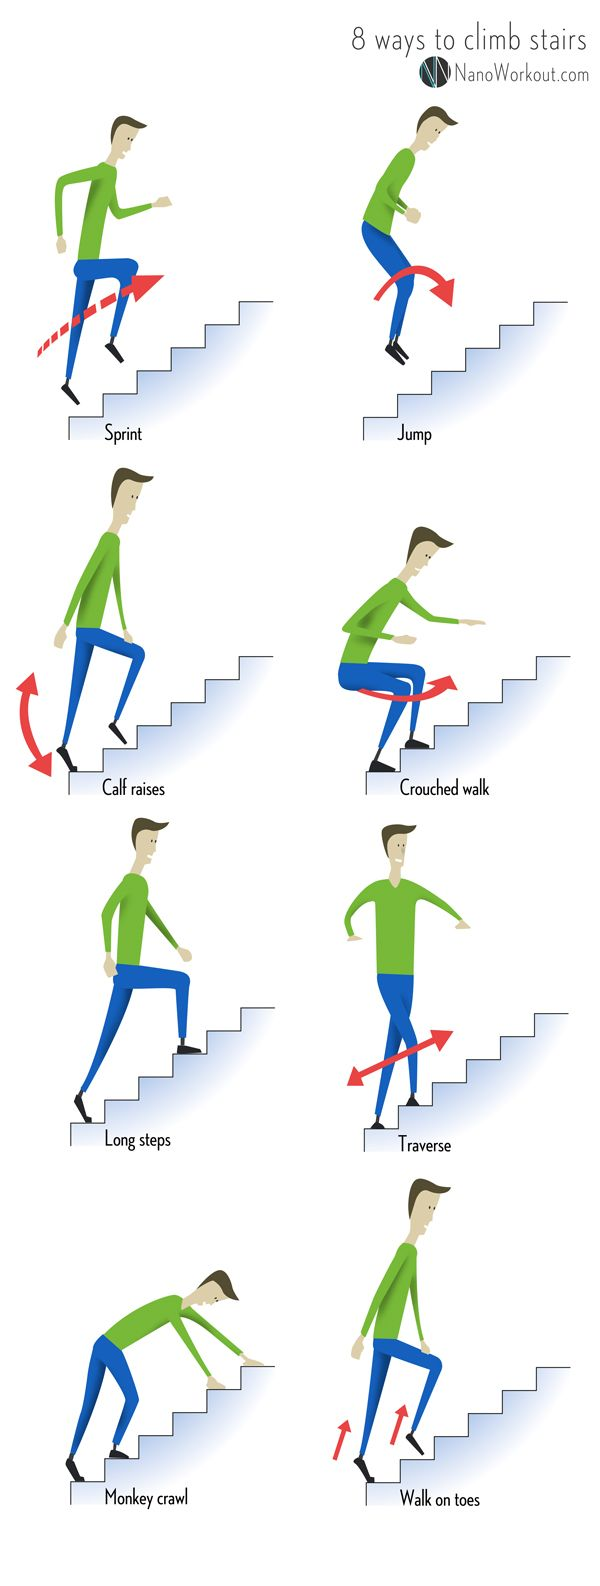 8 ways to climb stairs - The ultimate collection of stair climbing exercises www.nanoworkout.com